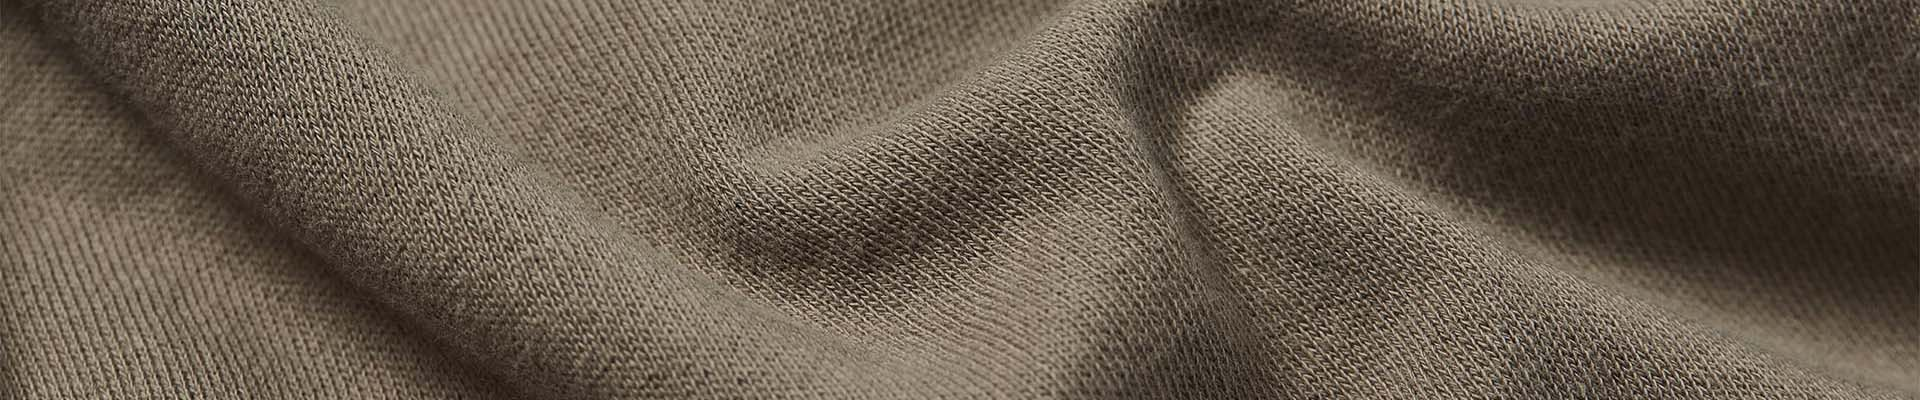 some brown fabric